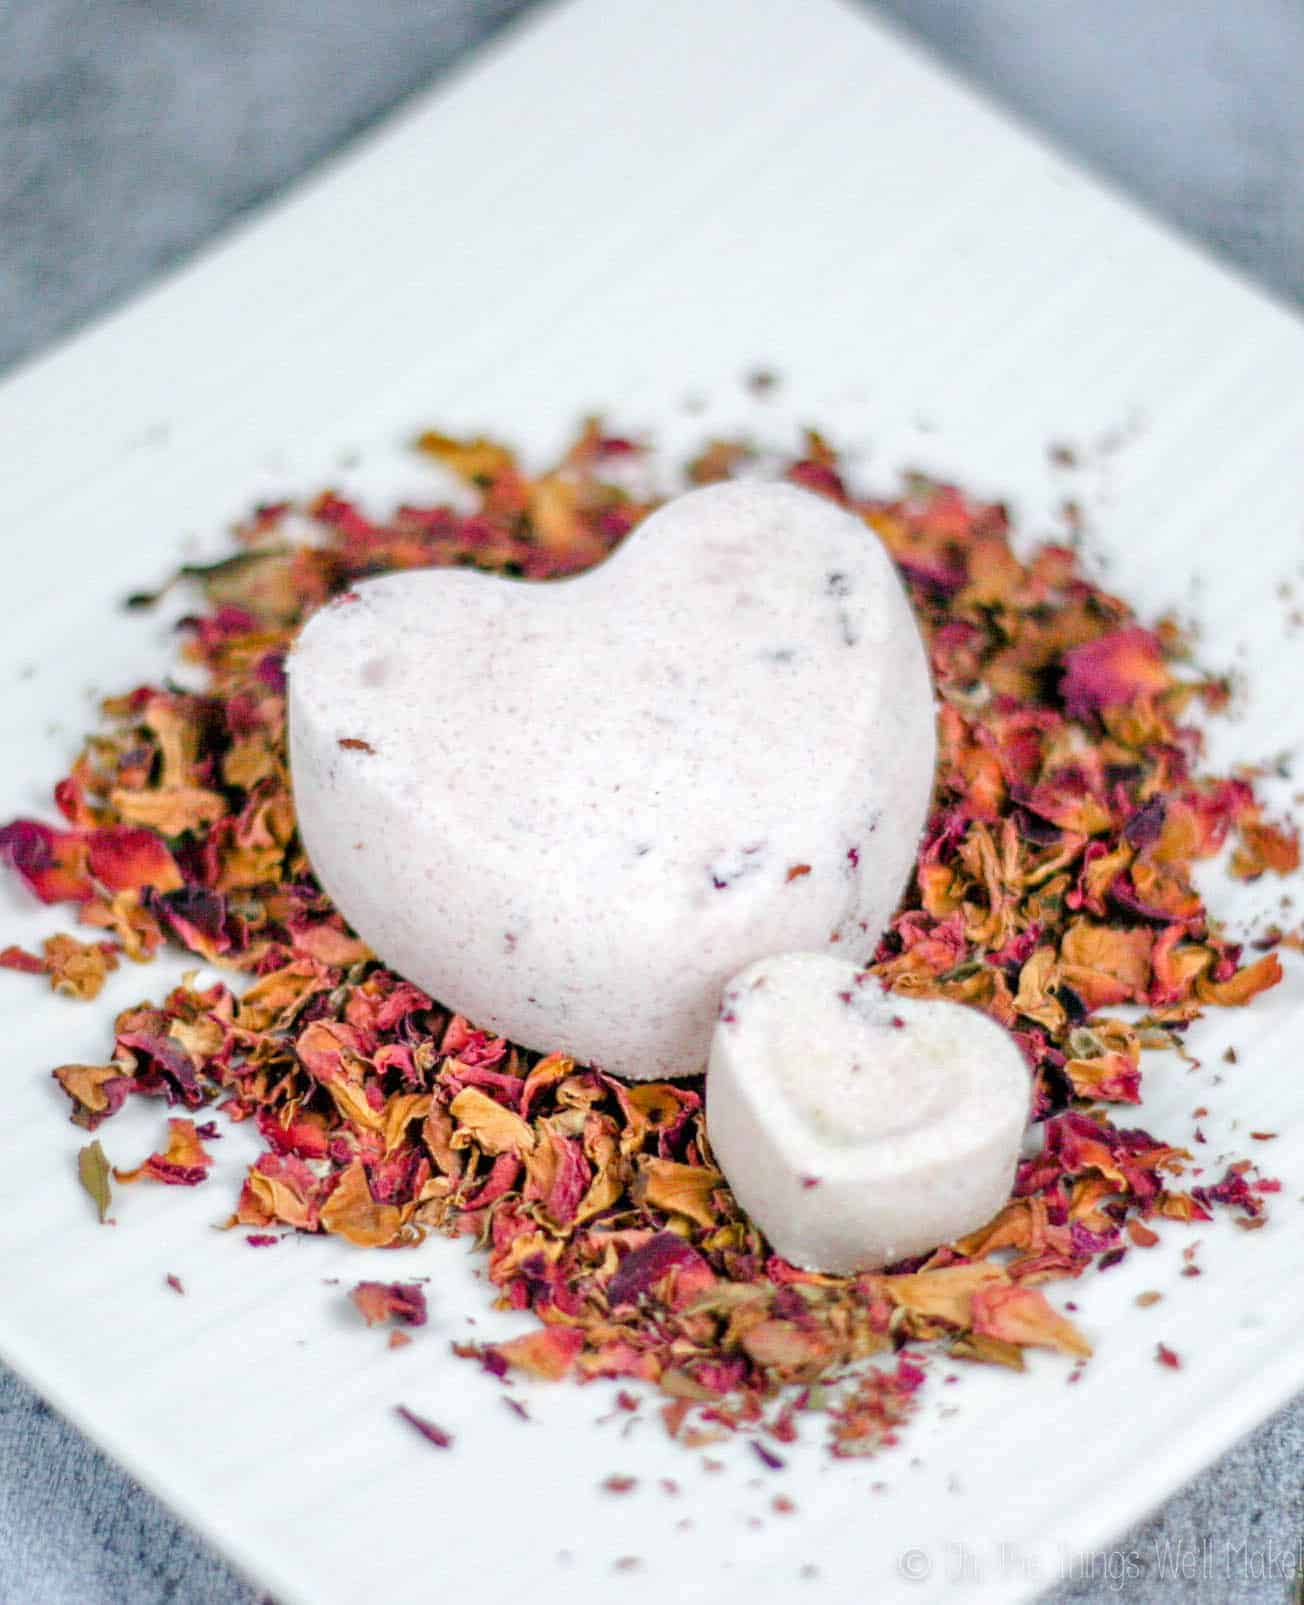 Two heart-shaped bath bombs on a plate with rose petals.